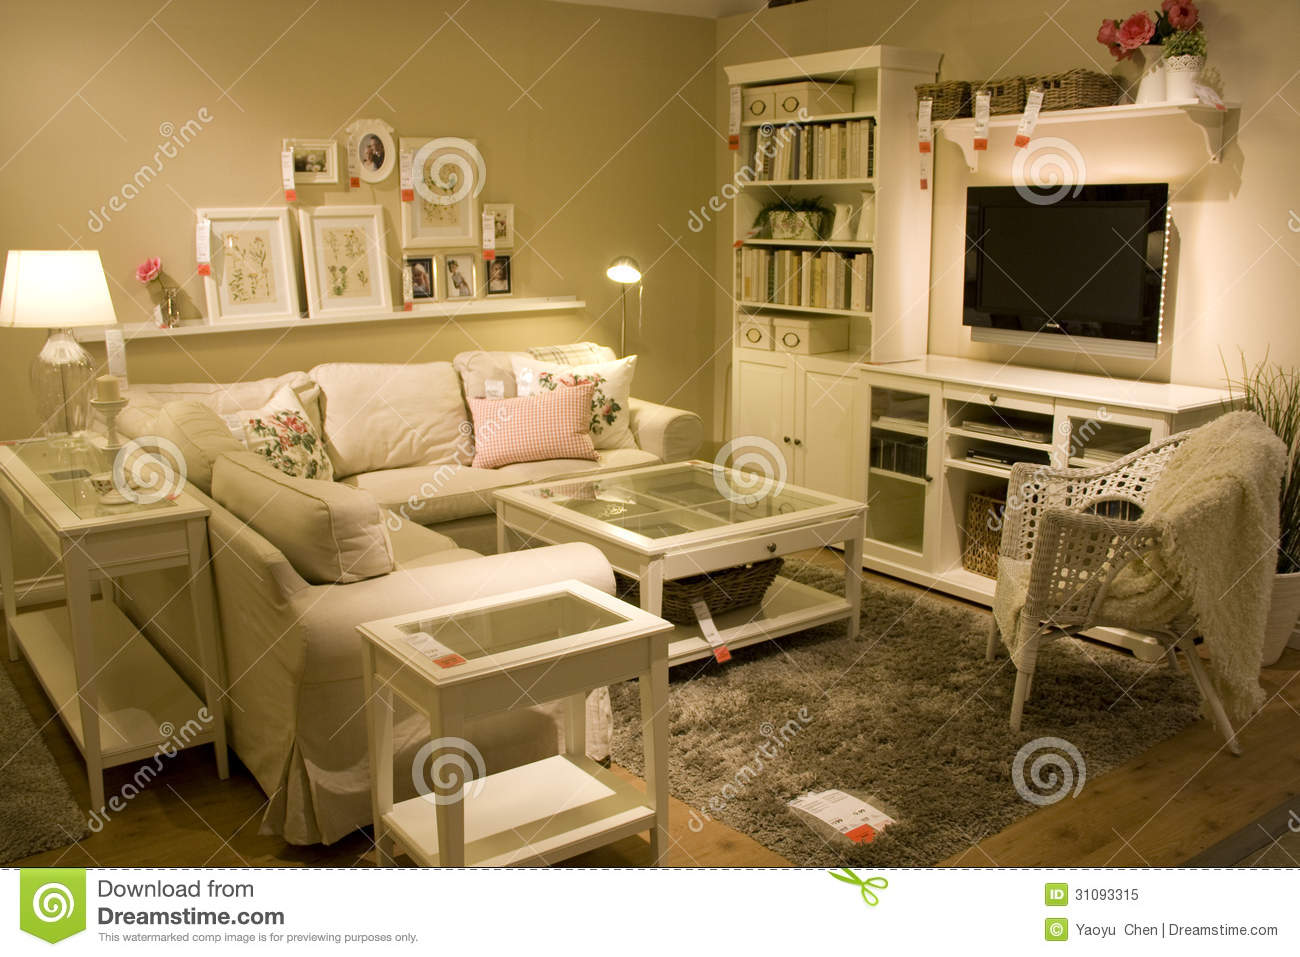 Living room furniture store editorial image image 31093315 for Home decor furniture stores